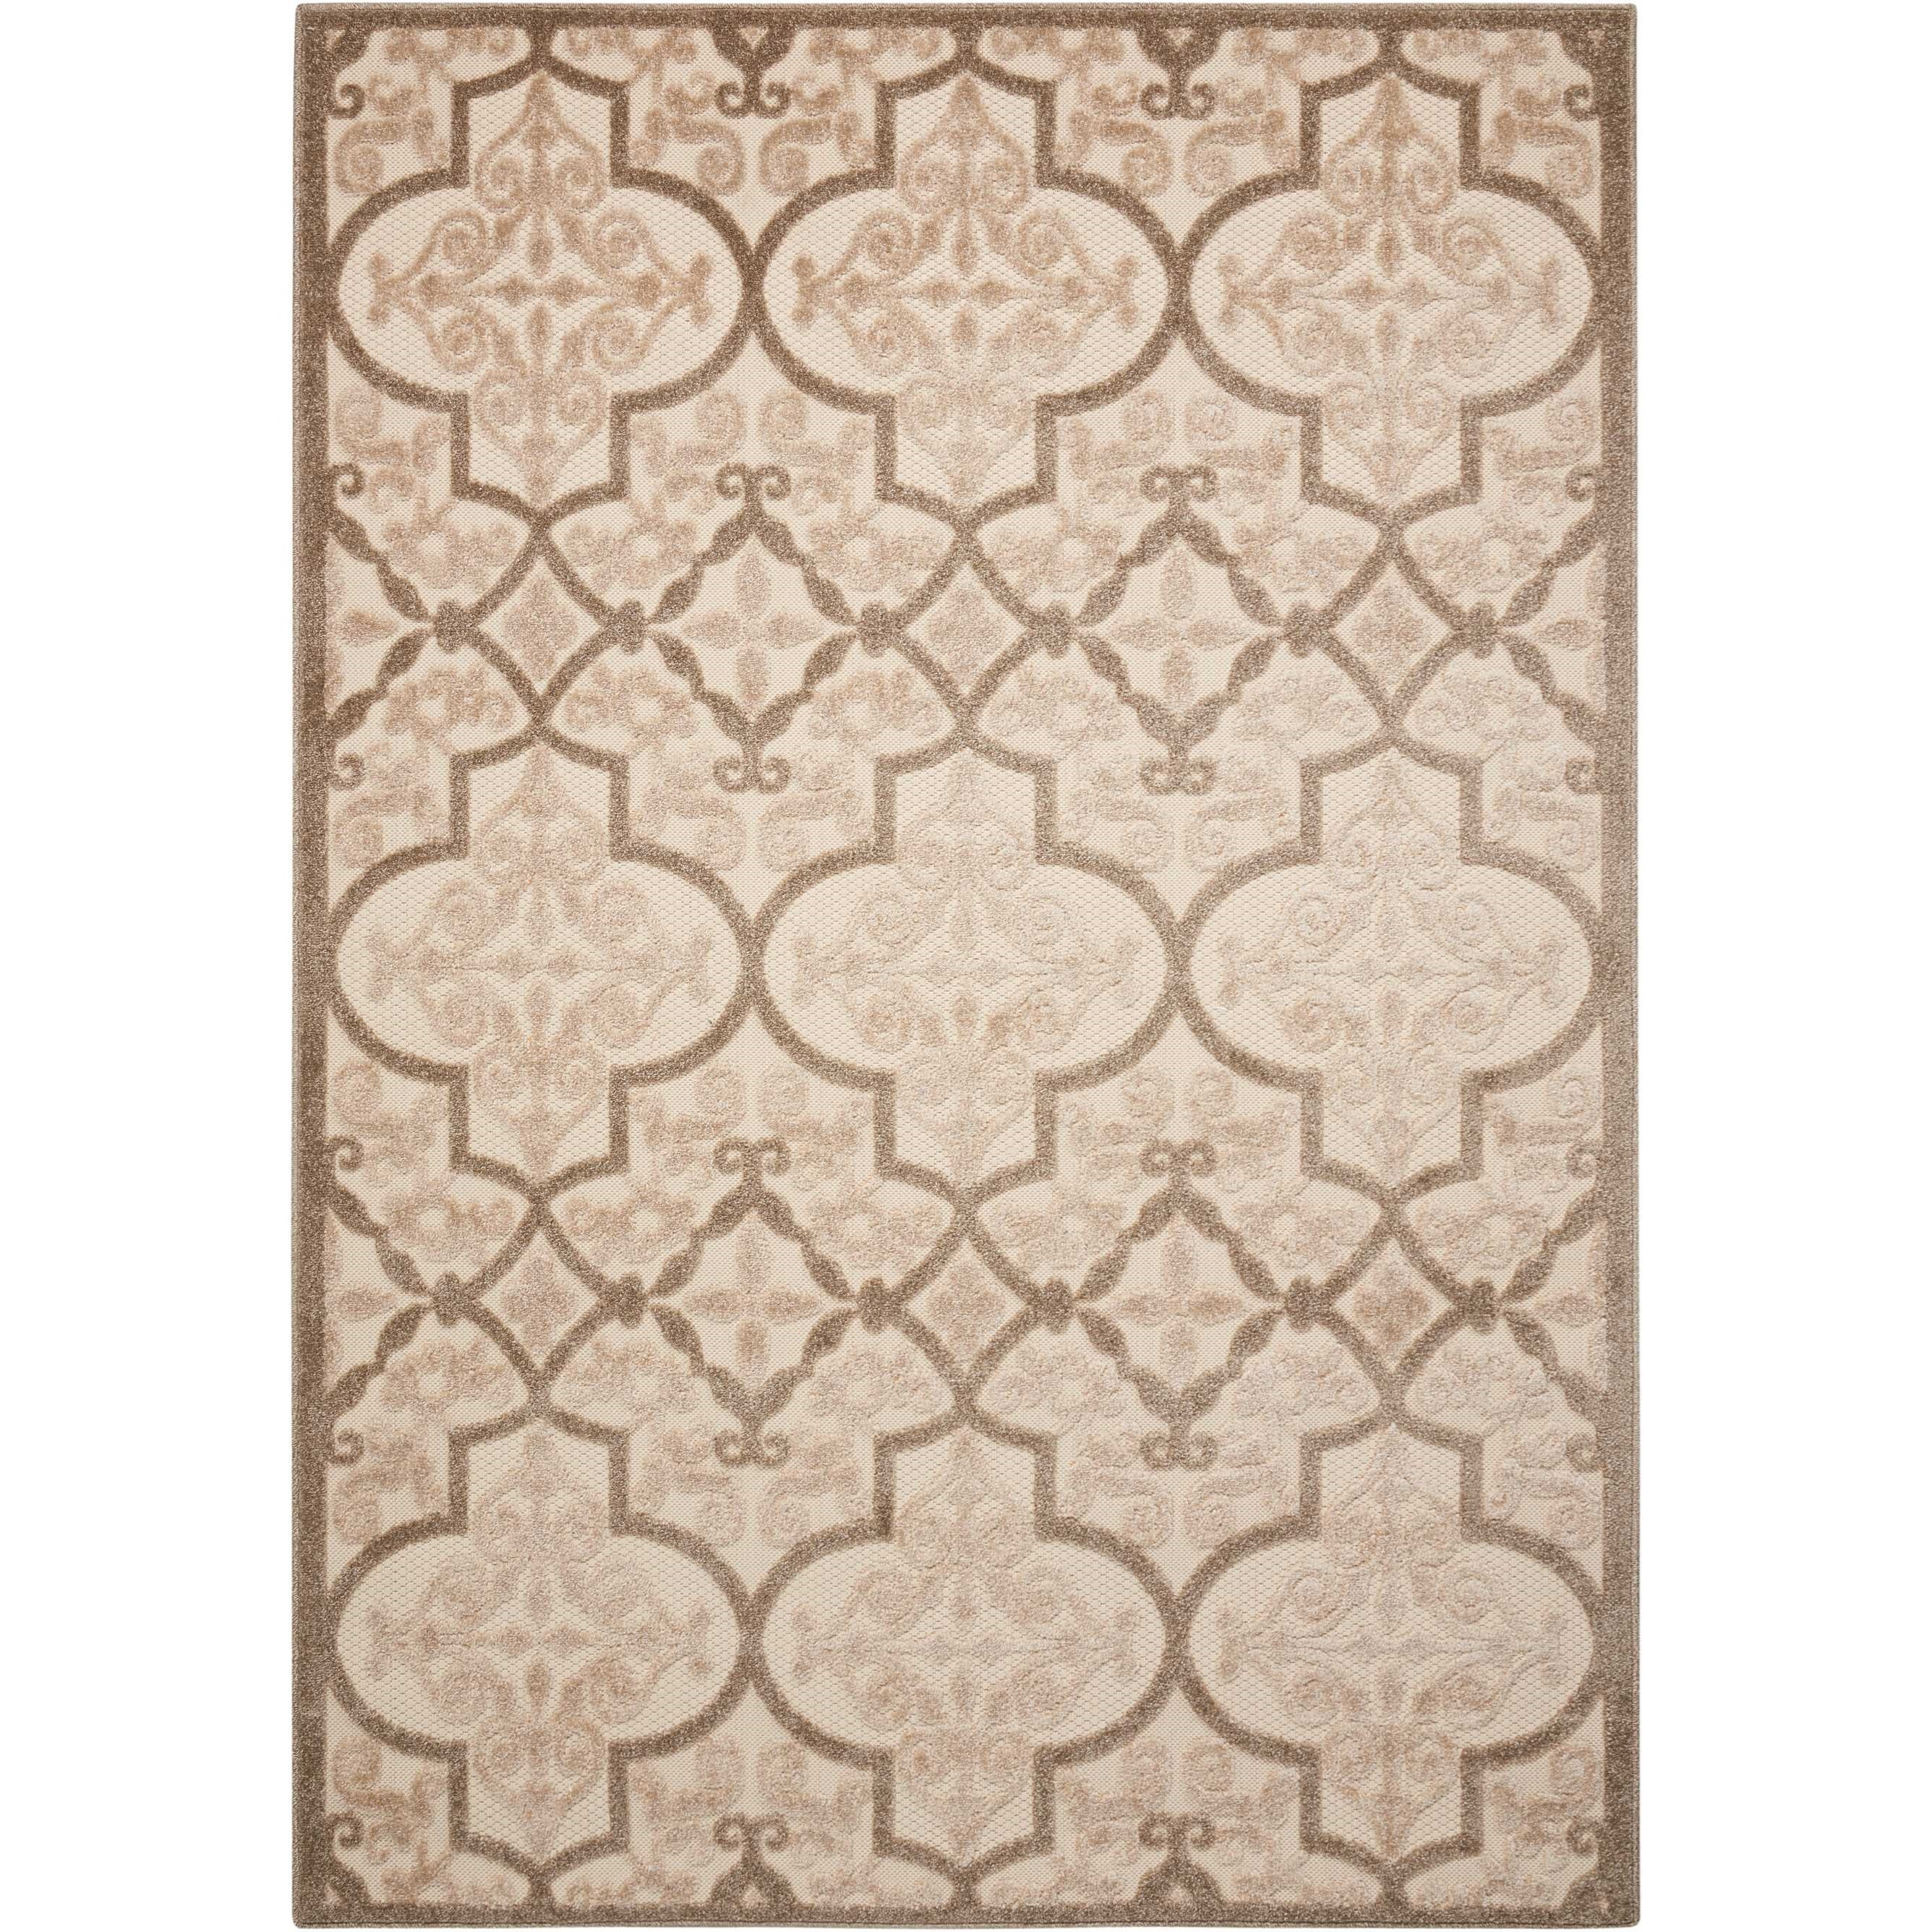 "Aloha 3'6"" X 5'6"" Cream Rug by Nourison at Home Collections Furniture"